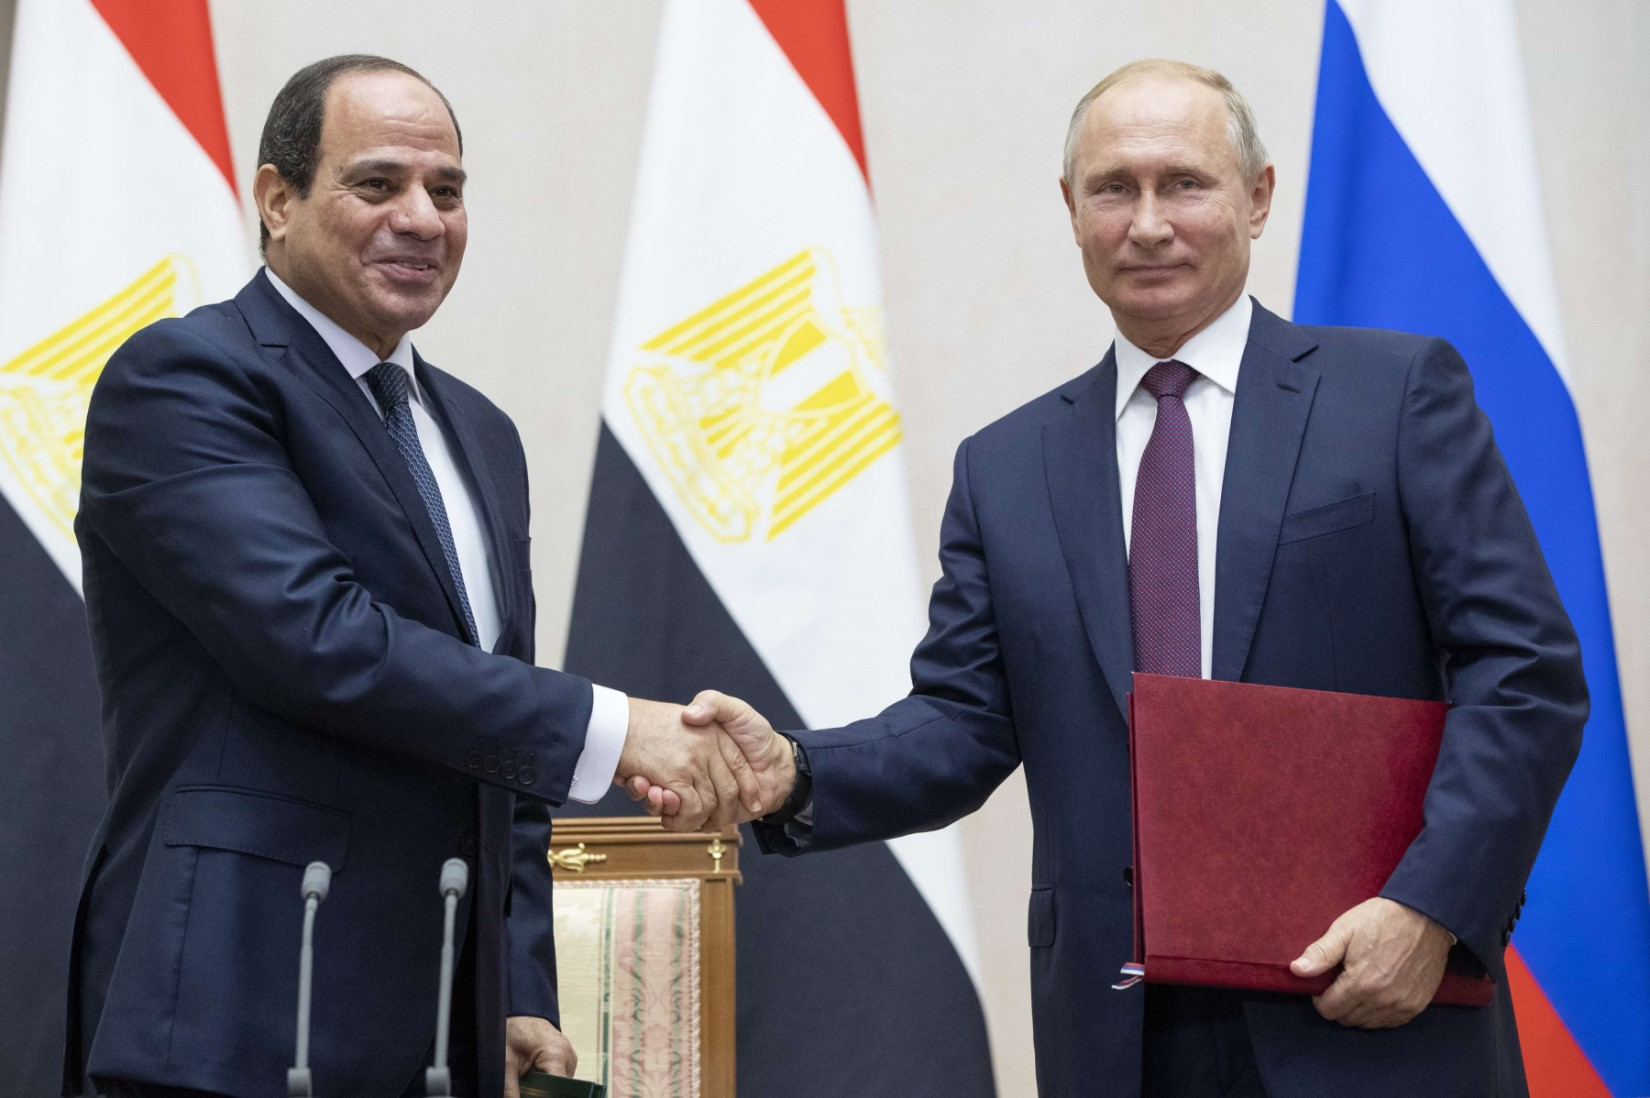 Russian President Vladimir Putin, right, and Egyptian President Abdel-Fattah el-Sisi shake hands after a signing ceremony following their talks in Sochi, Russia, Wednesday, October 17, 2018. (AP)